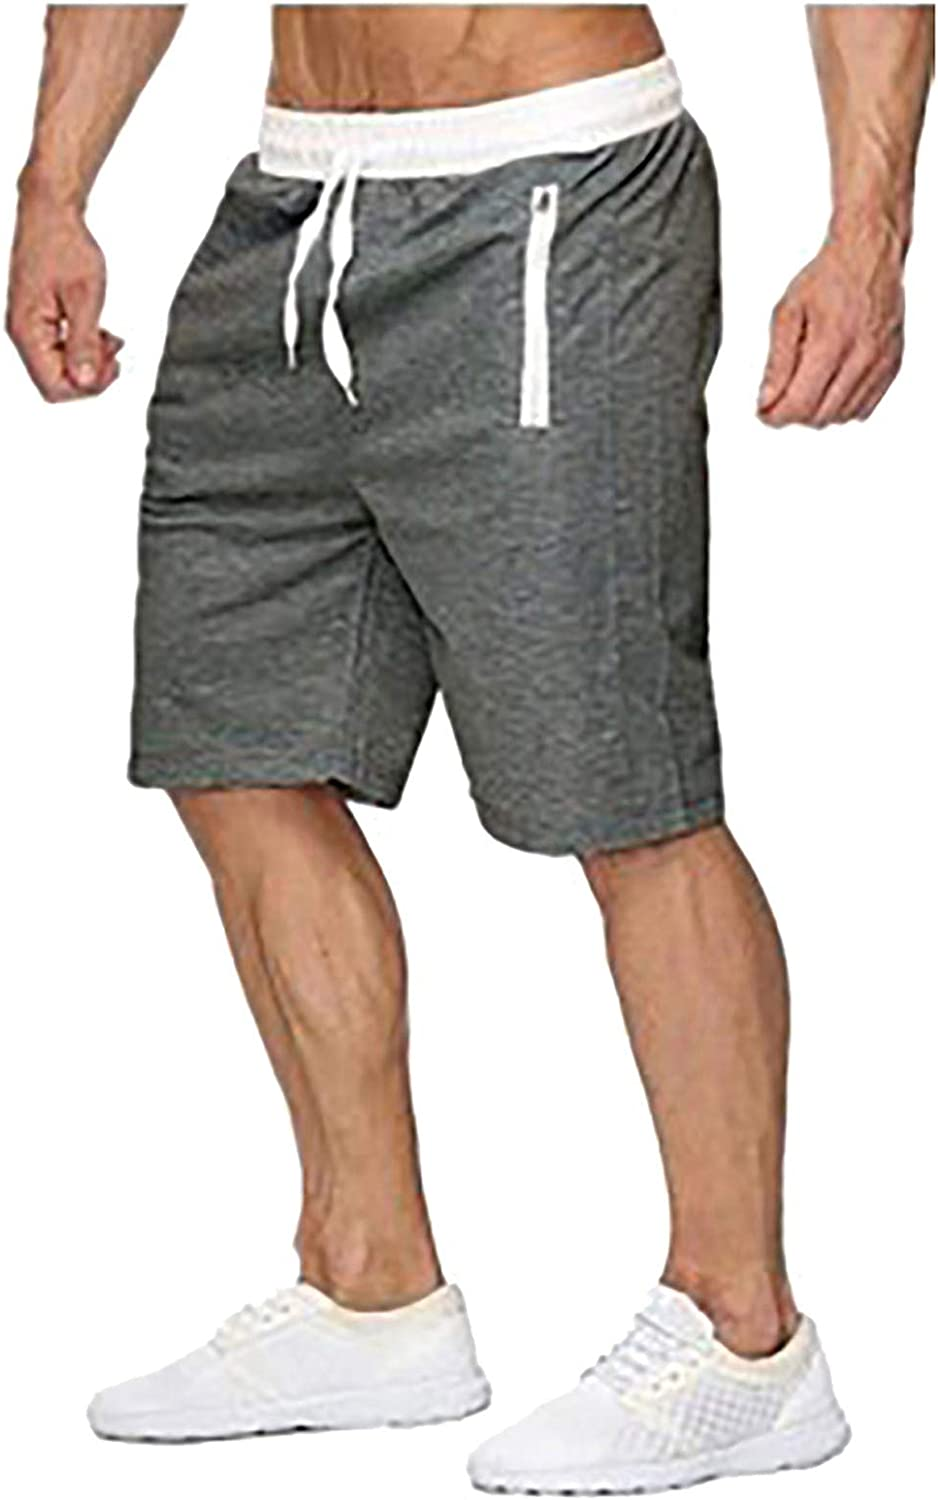 Yhjh Shorter Shorts for Men Solid Color Pockets Zippered Workout Fitness Athletic Gym Men's Jersey Shorts Gym Shorts